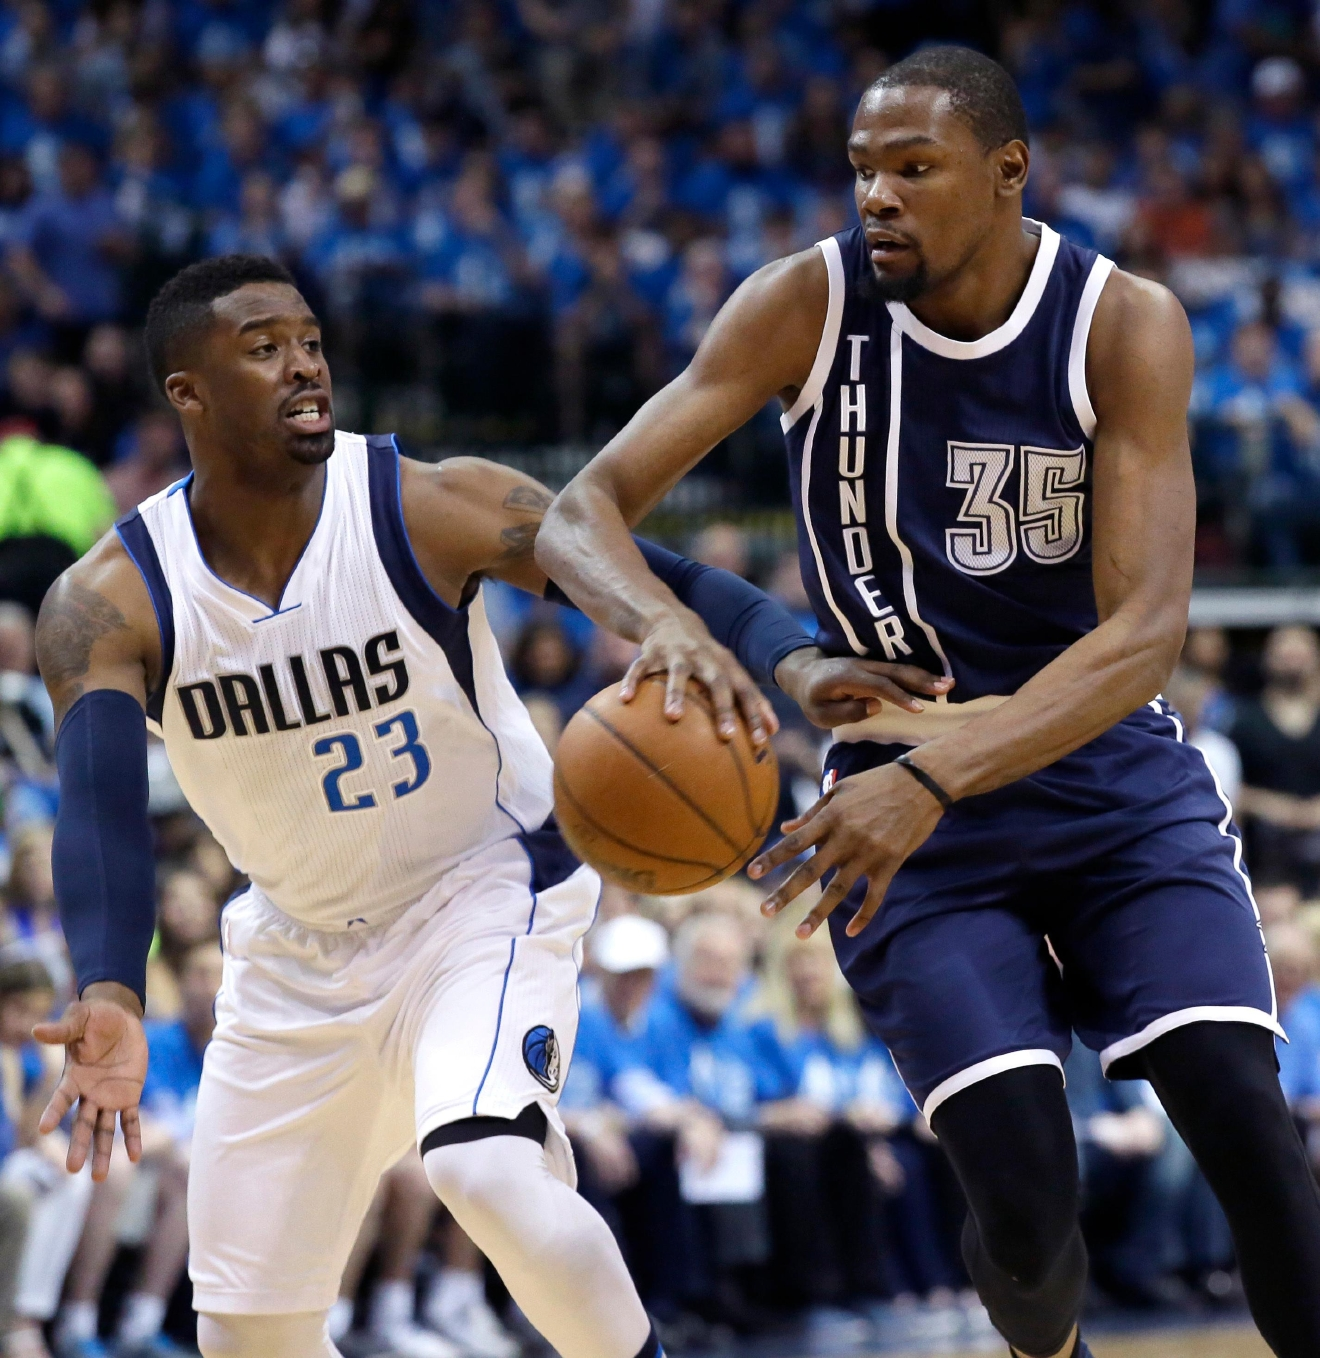 Oklahoma City Thunder forward Kevin Durant (35) drives against Dallas Mavericks guard Wesley Matthews (23) during the first half of Game 4 of a first-round NBA basketball playoff series Saturday, April 23, 2016, in Dallas. (AP Photo/LM Otero)